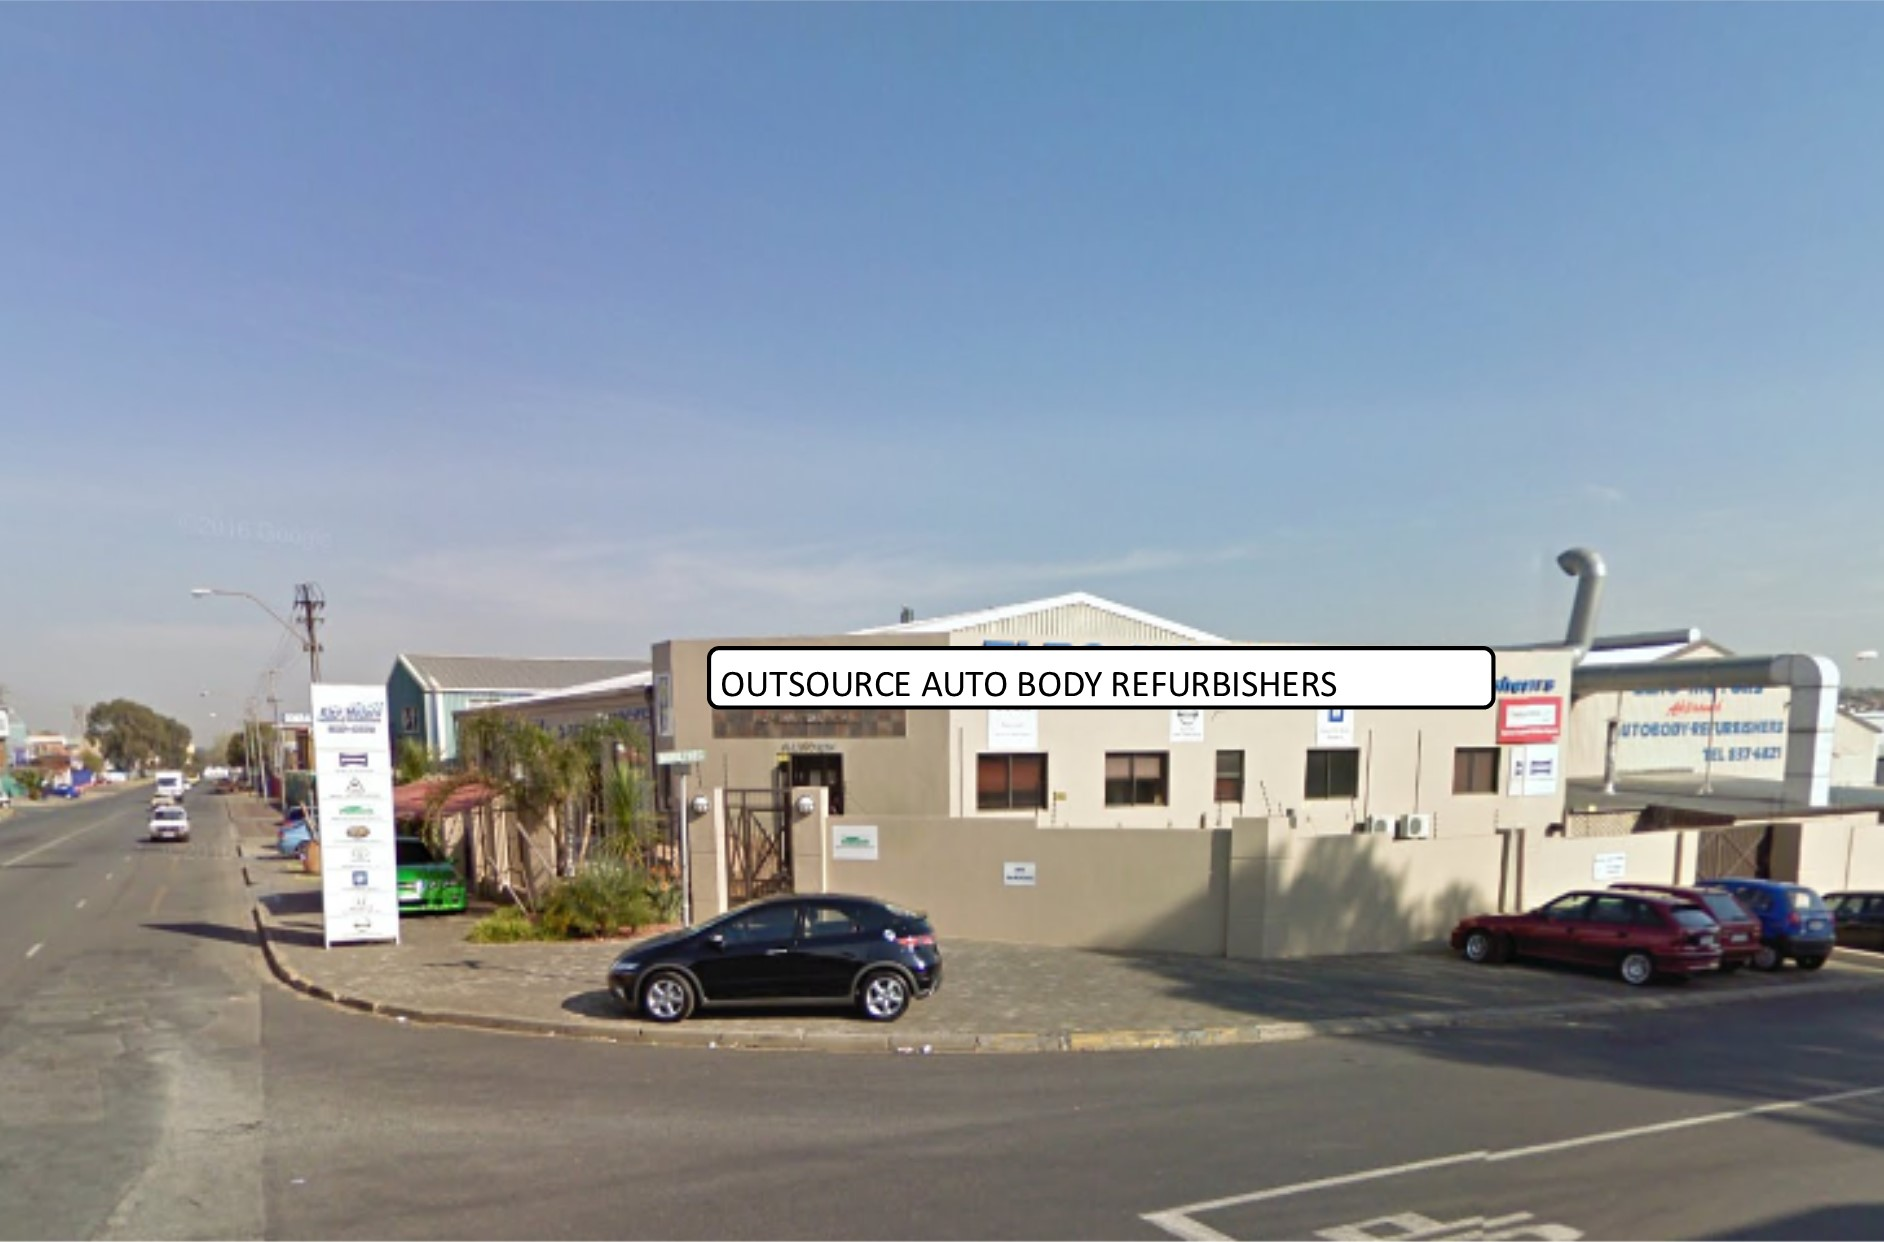 Outsource Auto Body Refurbishers